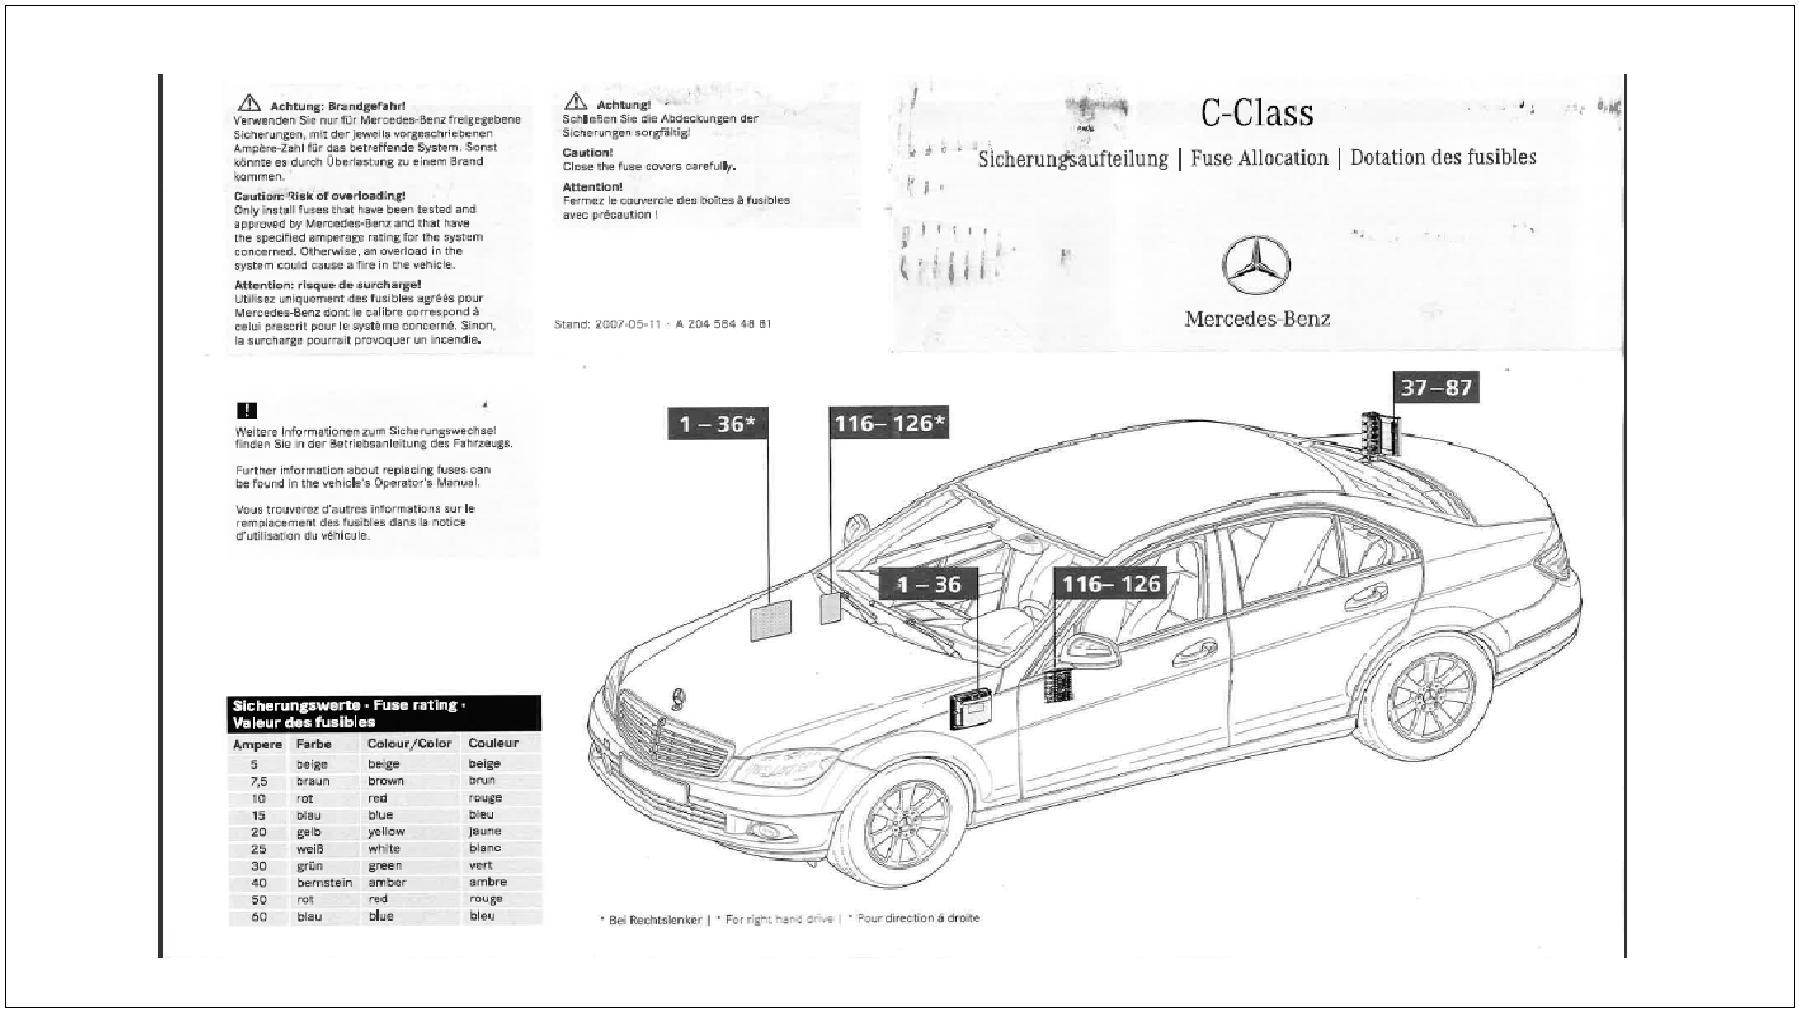 hight resolution of 2013 mercedes benz c250 coupe fuse box diagram data wiring diagram 2013 mercedes benz c250 coupe fuse box diagram